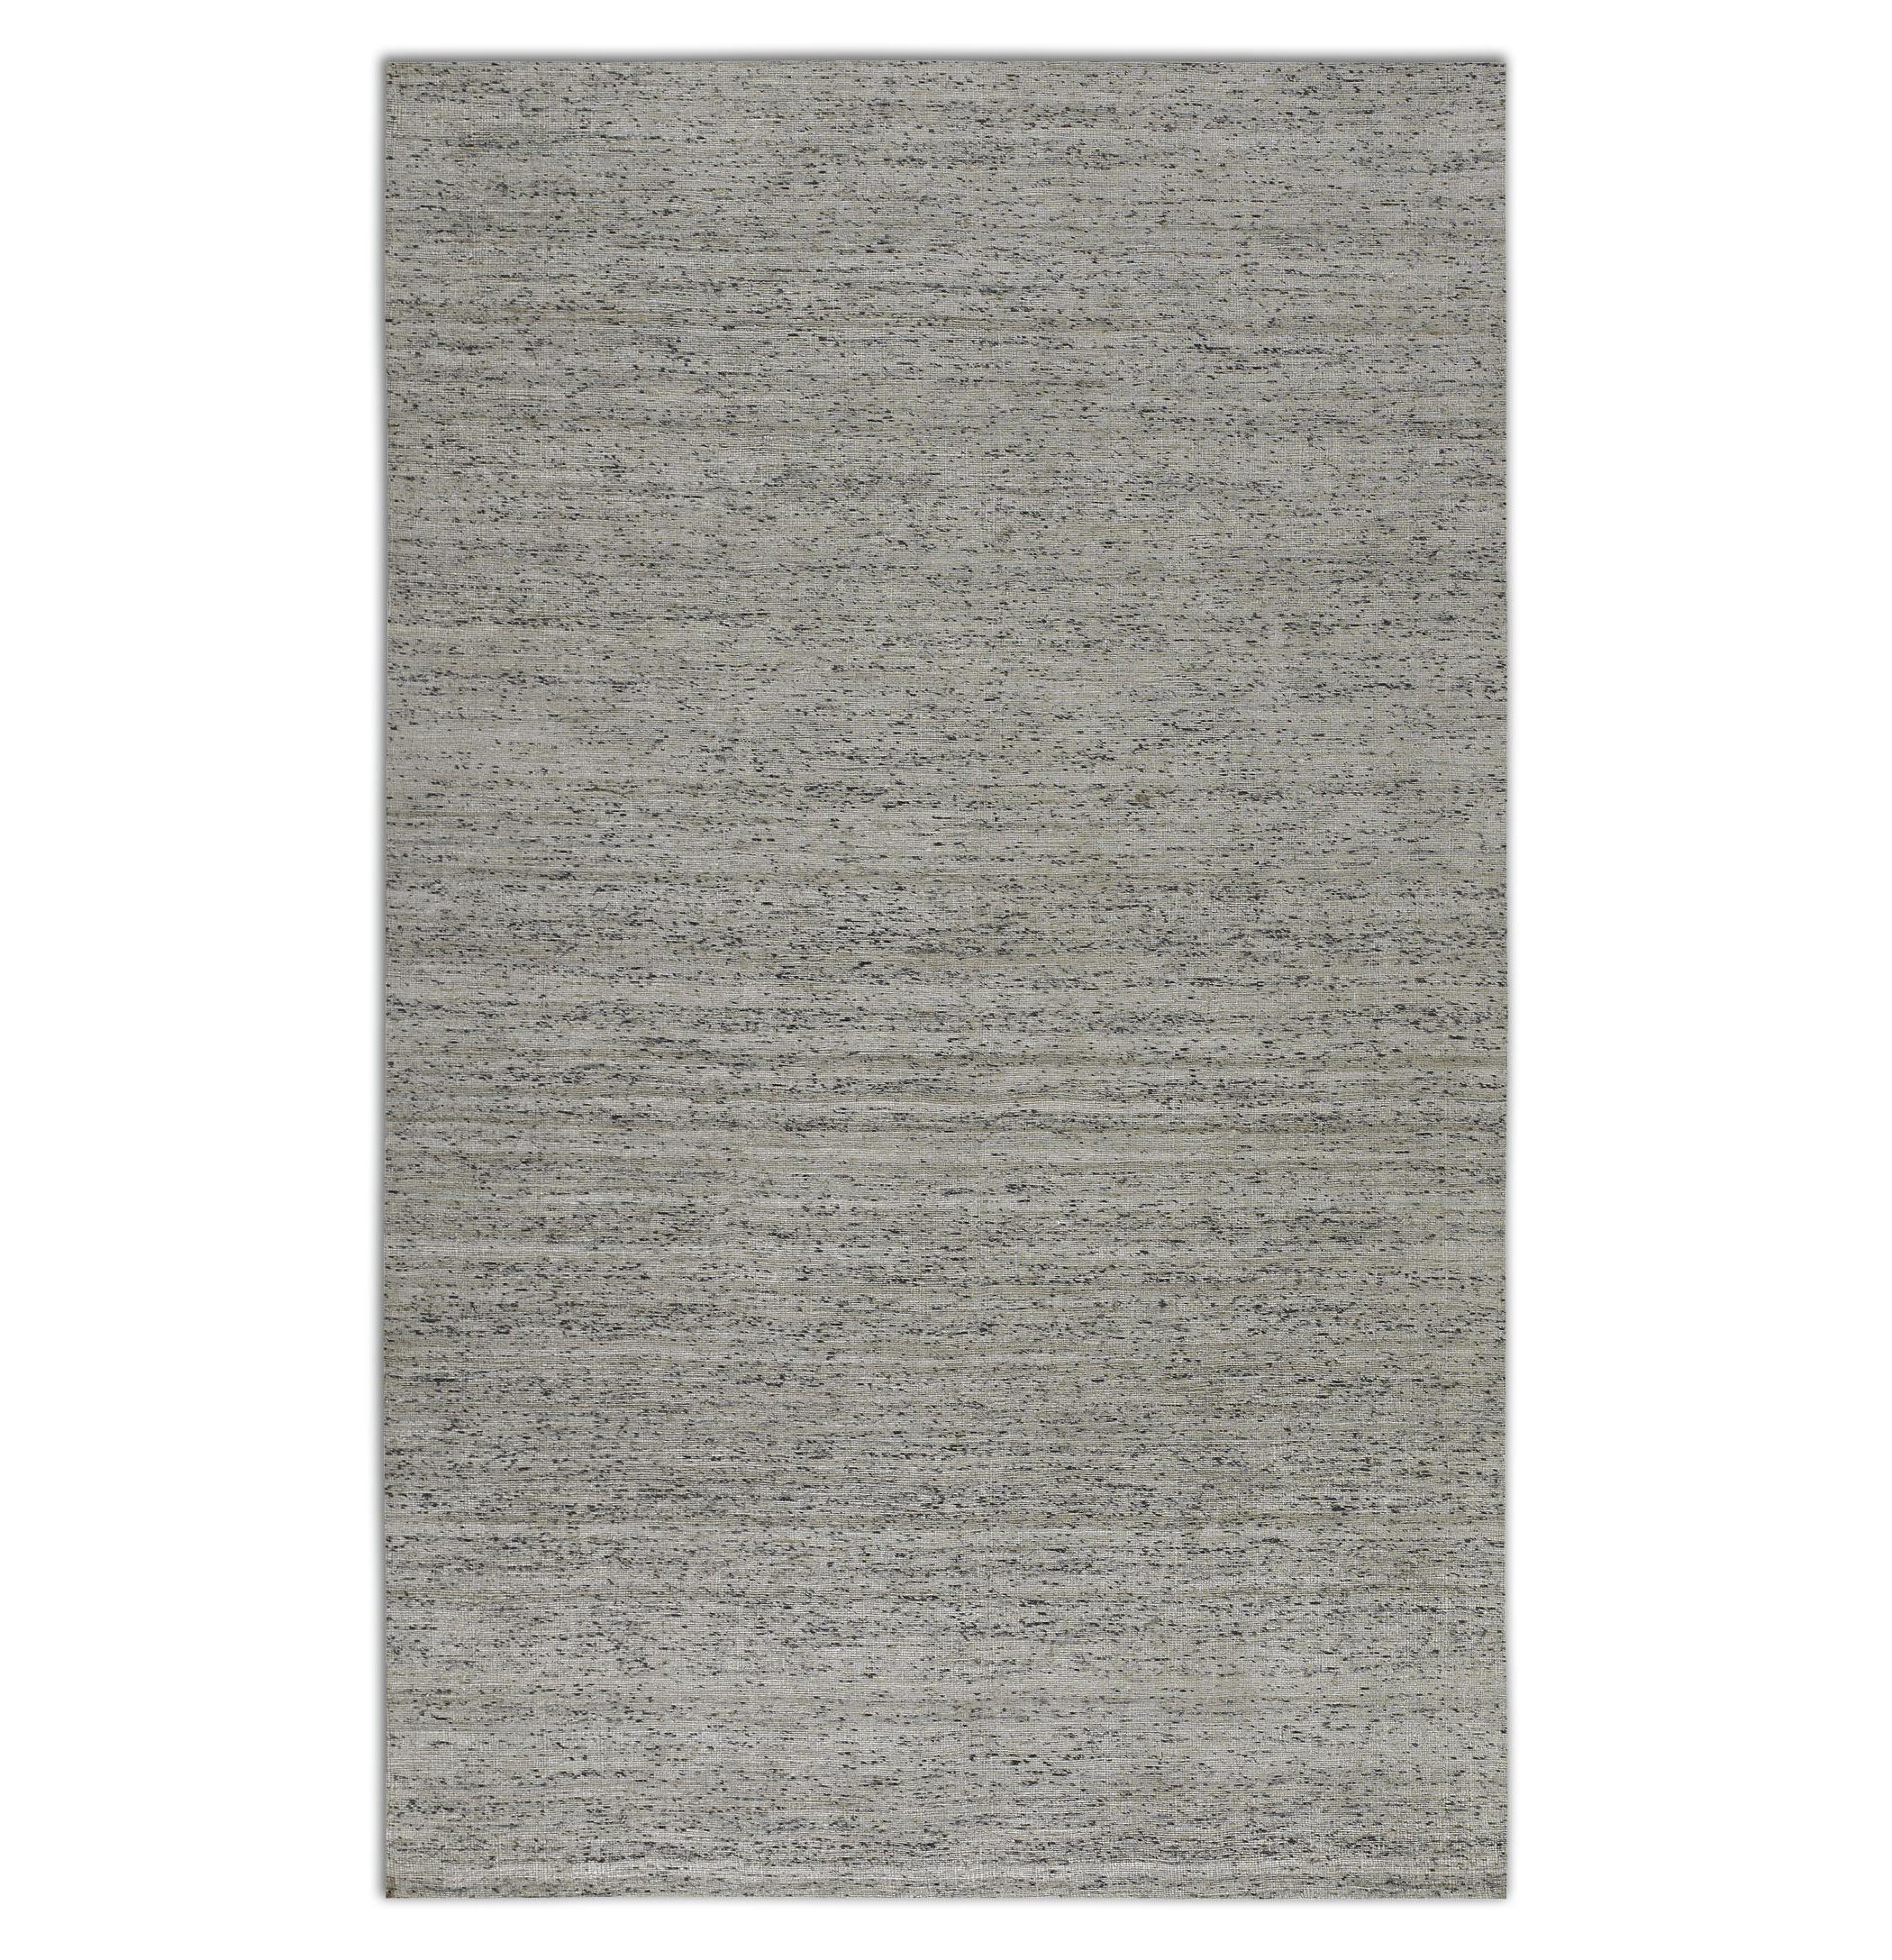 Uttermost Rugs Dacian 5 X 8 Rug - White - Item Number: 73059-5